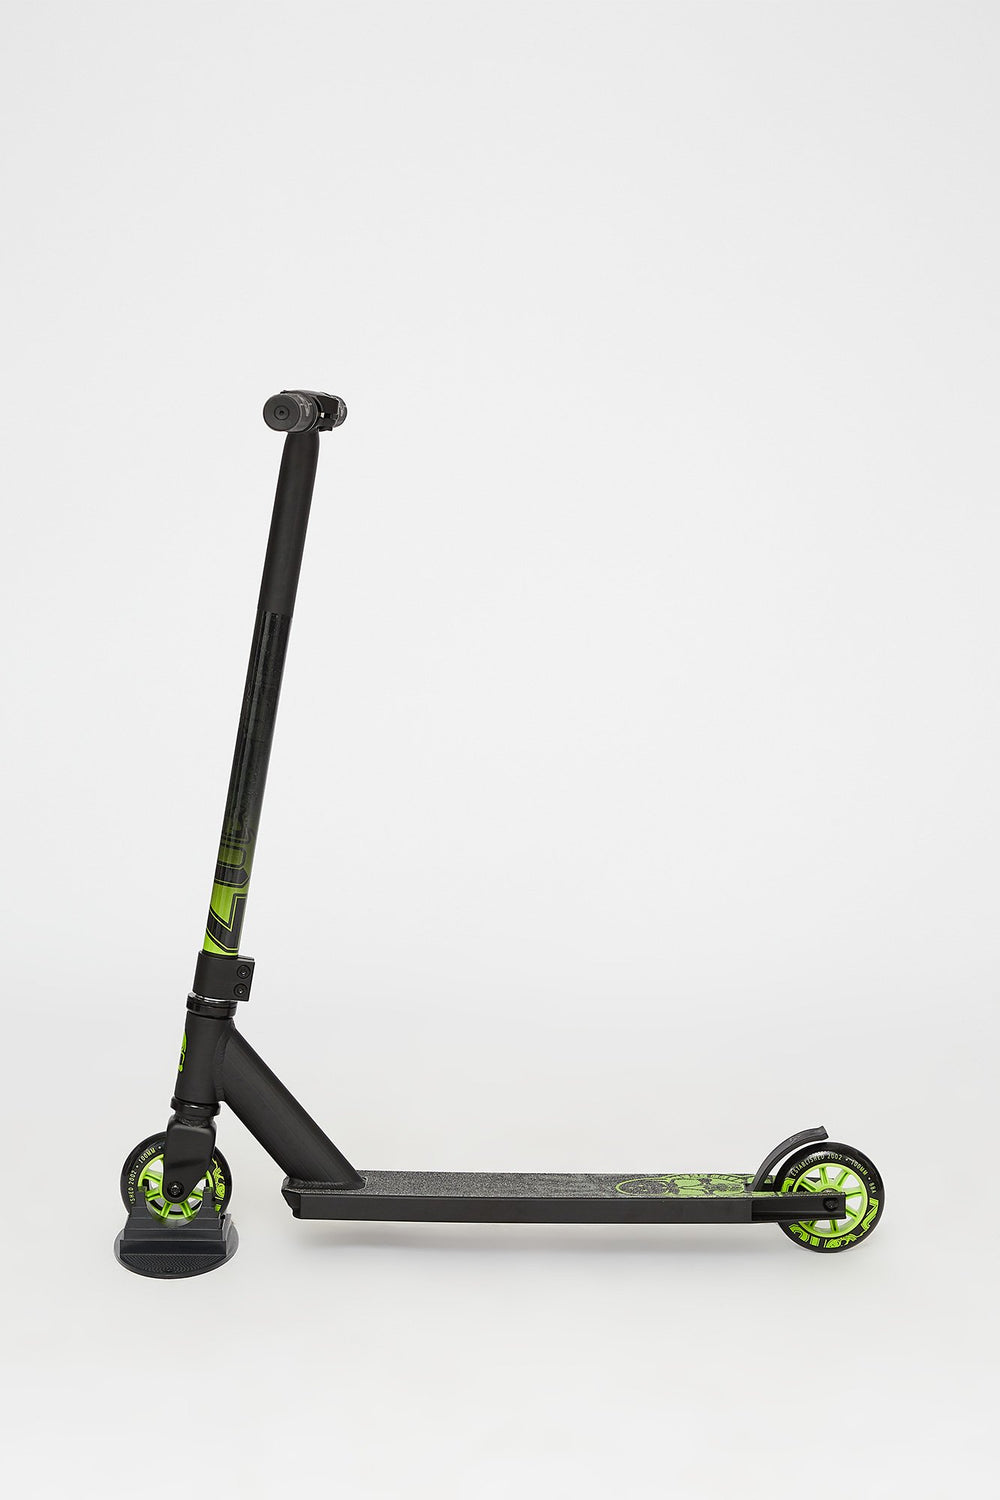 Madd Gear Carve Pro Scooter Black